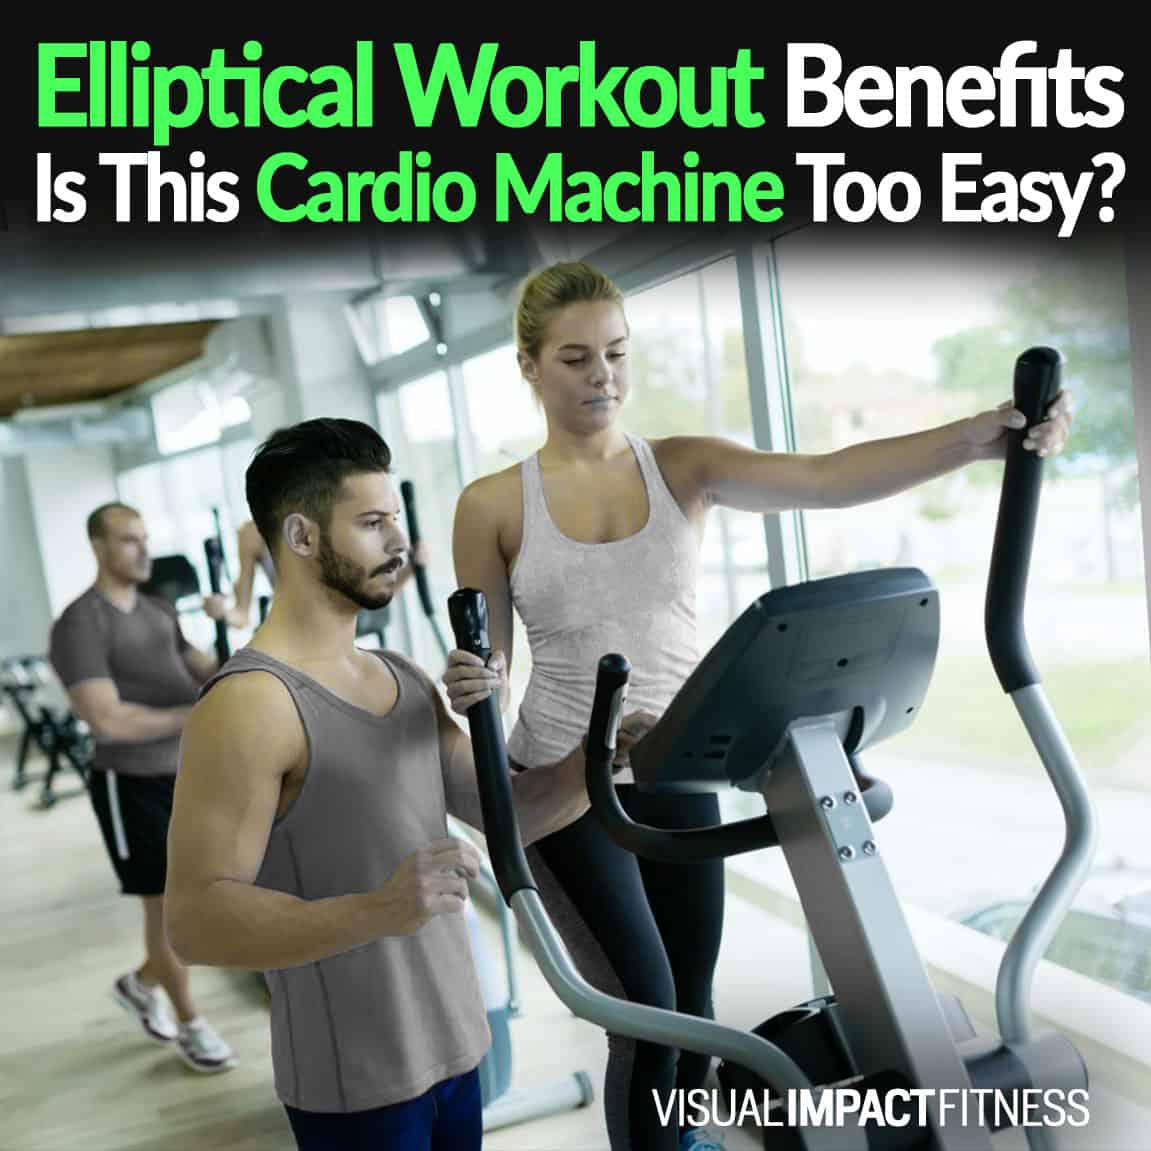 Elliptical Workout Benefits – Is This Cardio Machine Too Easy?